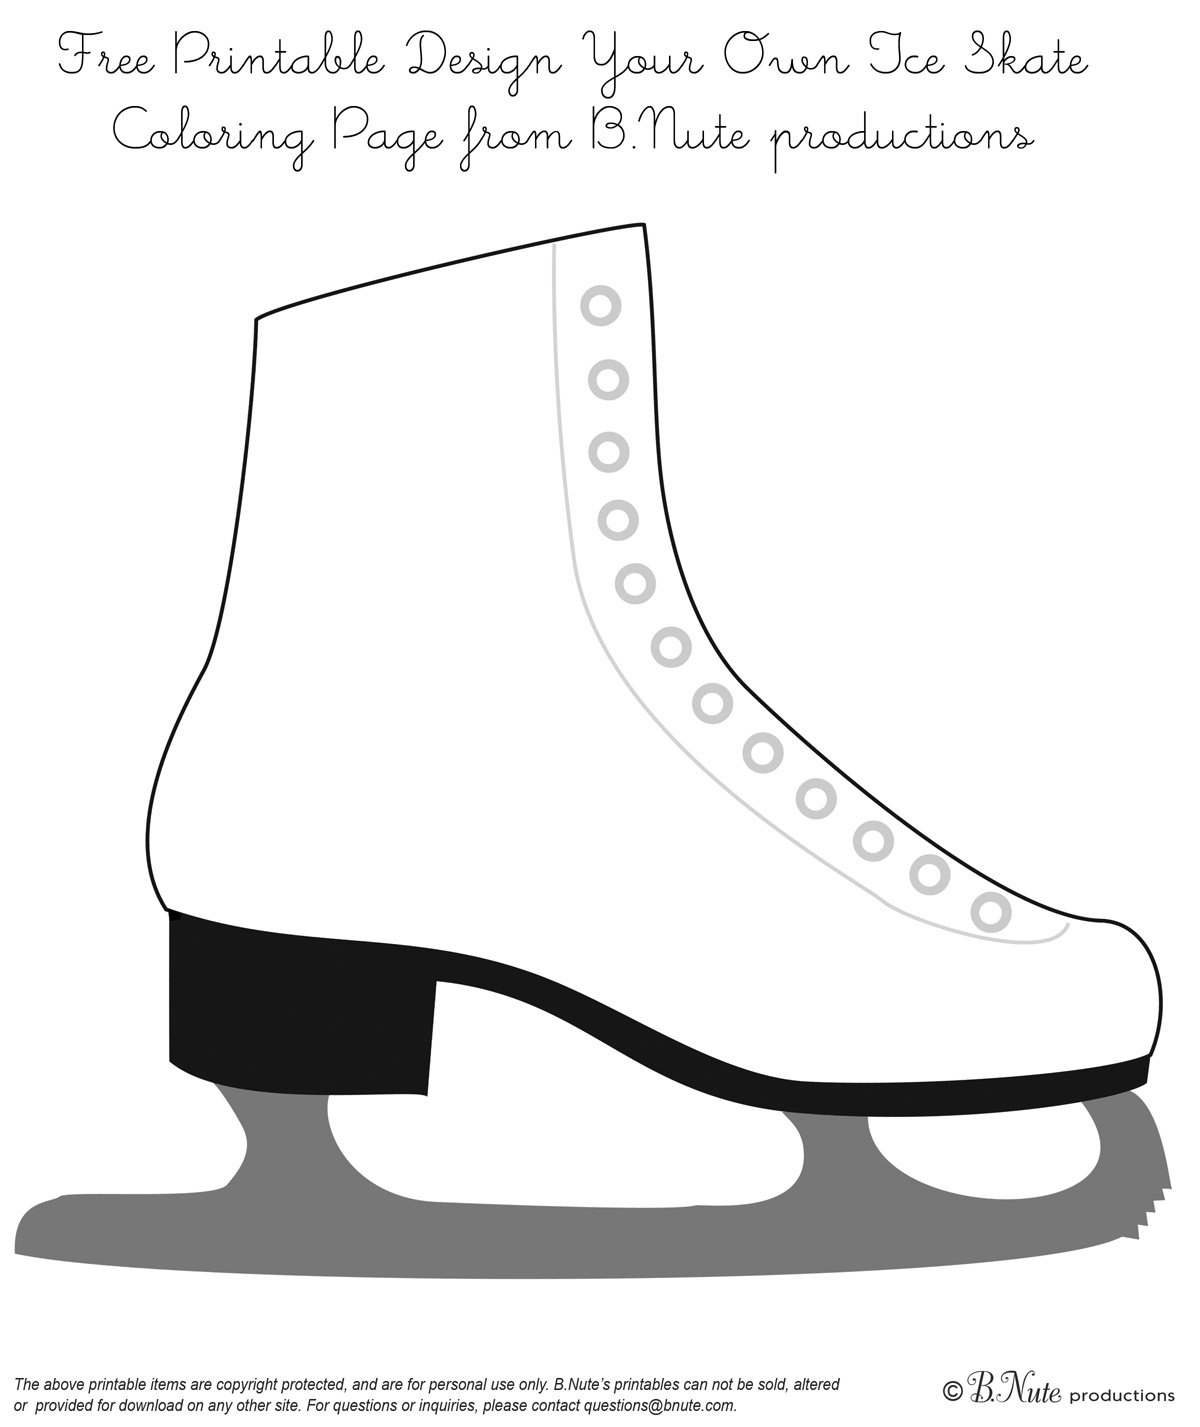 Adult Cute Design Your Own Coloring Pages Images beauty bnute productions free printable coloring page design your own ice skate from b nute gallery images